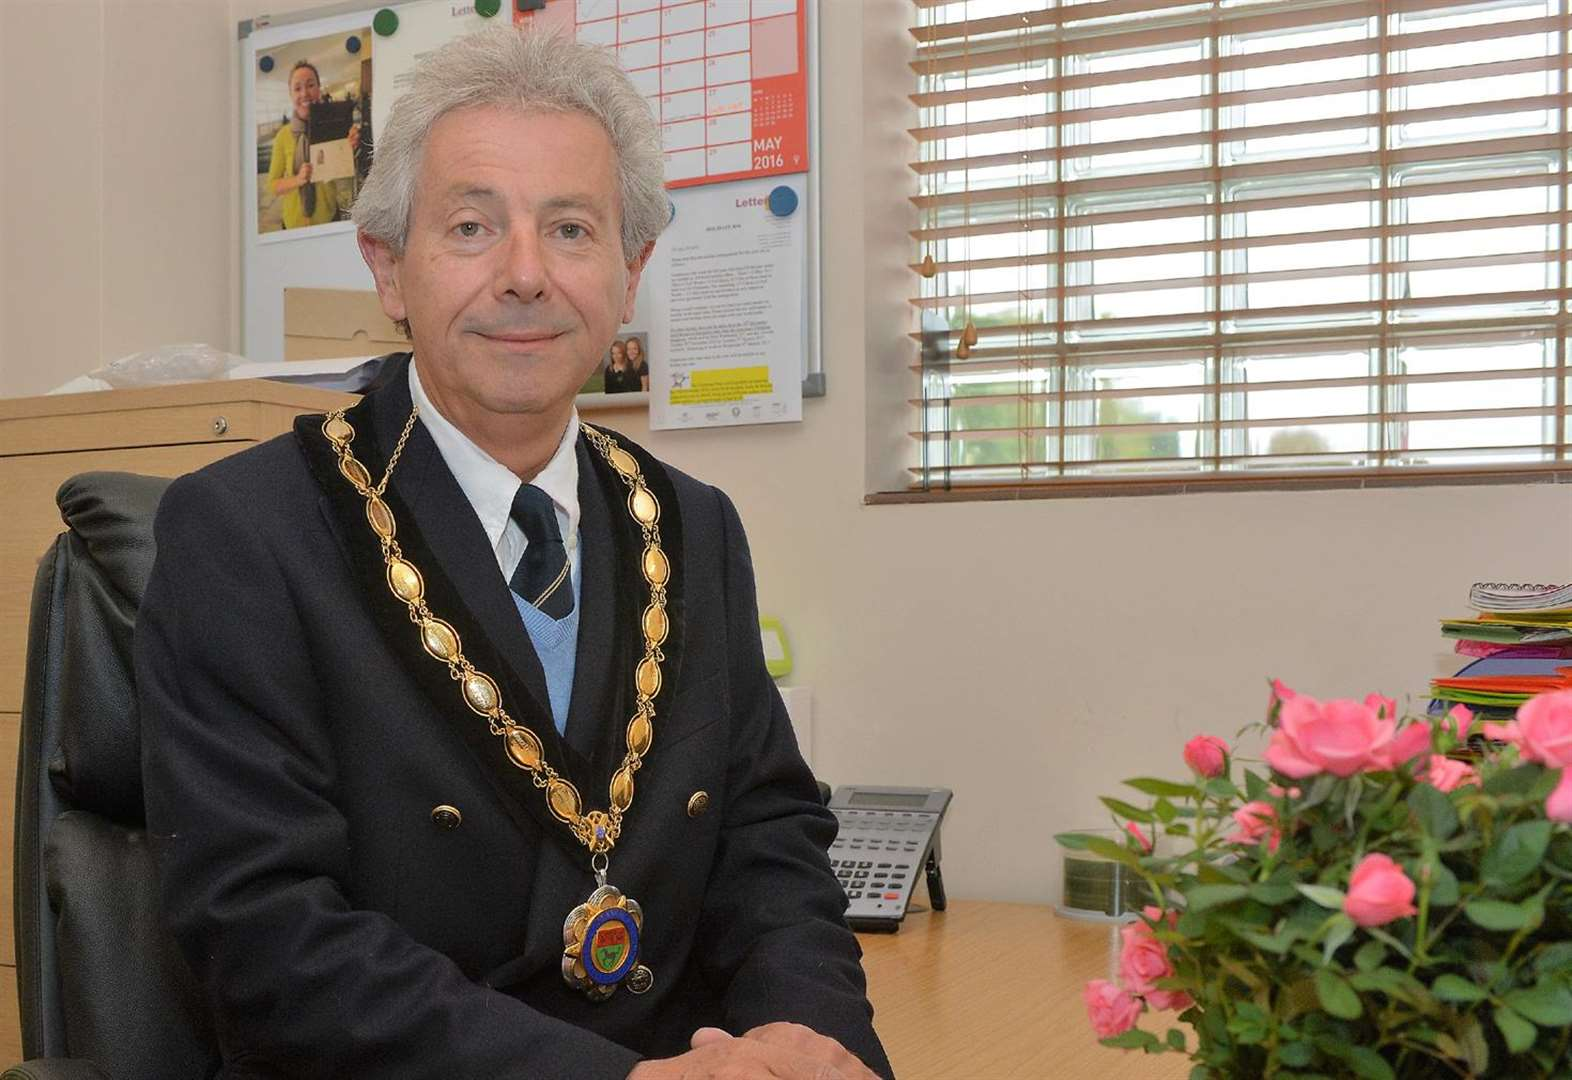 Former Newmarket mayor says it would be a 'travesty' if West Suffolk Council became a borough